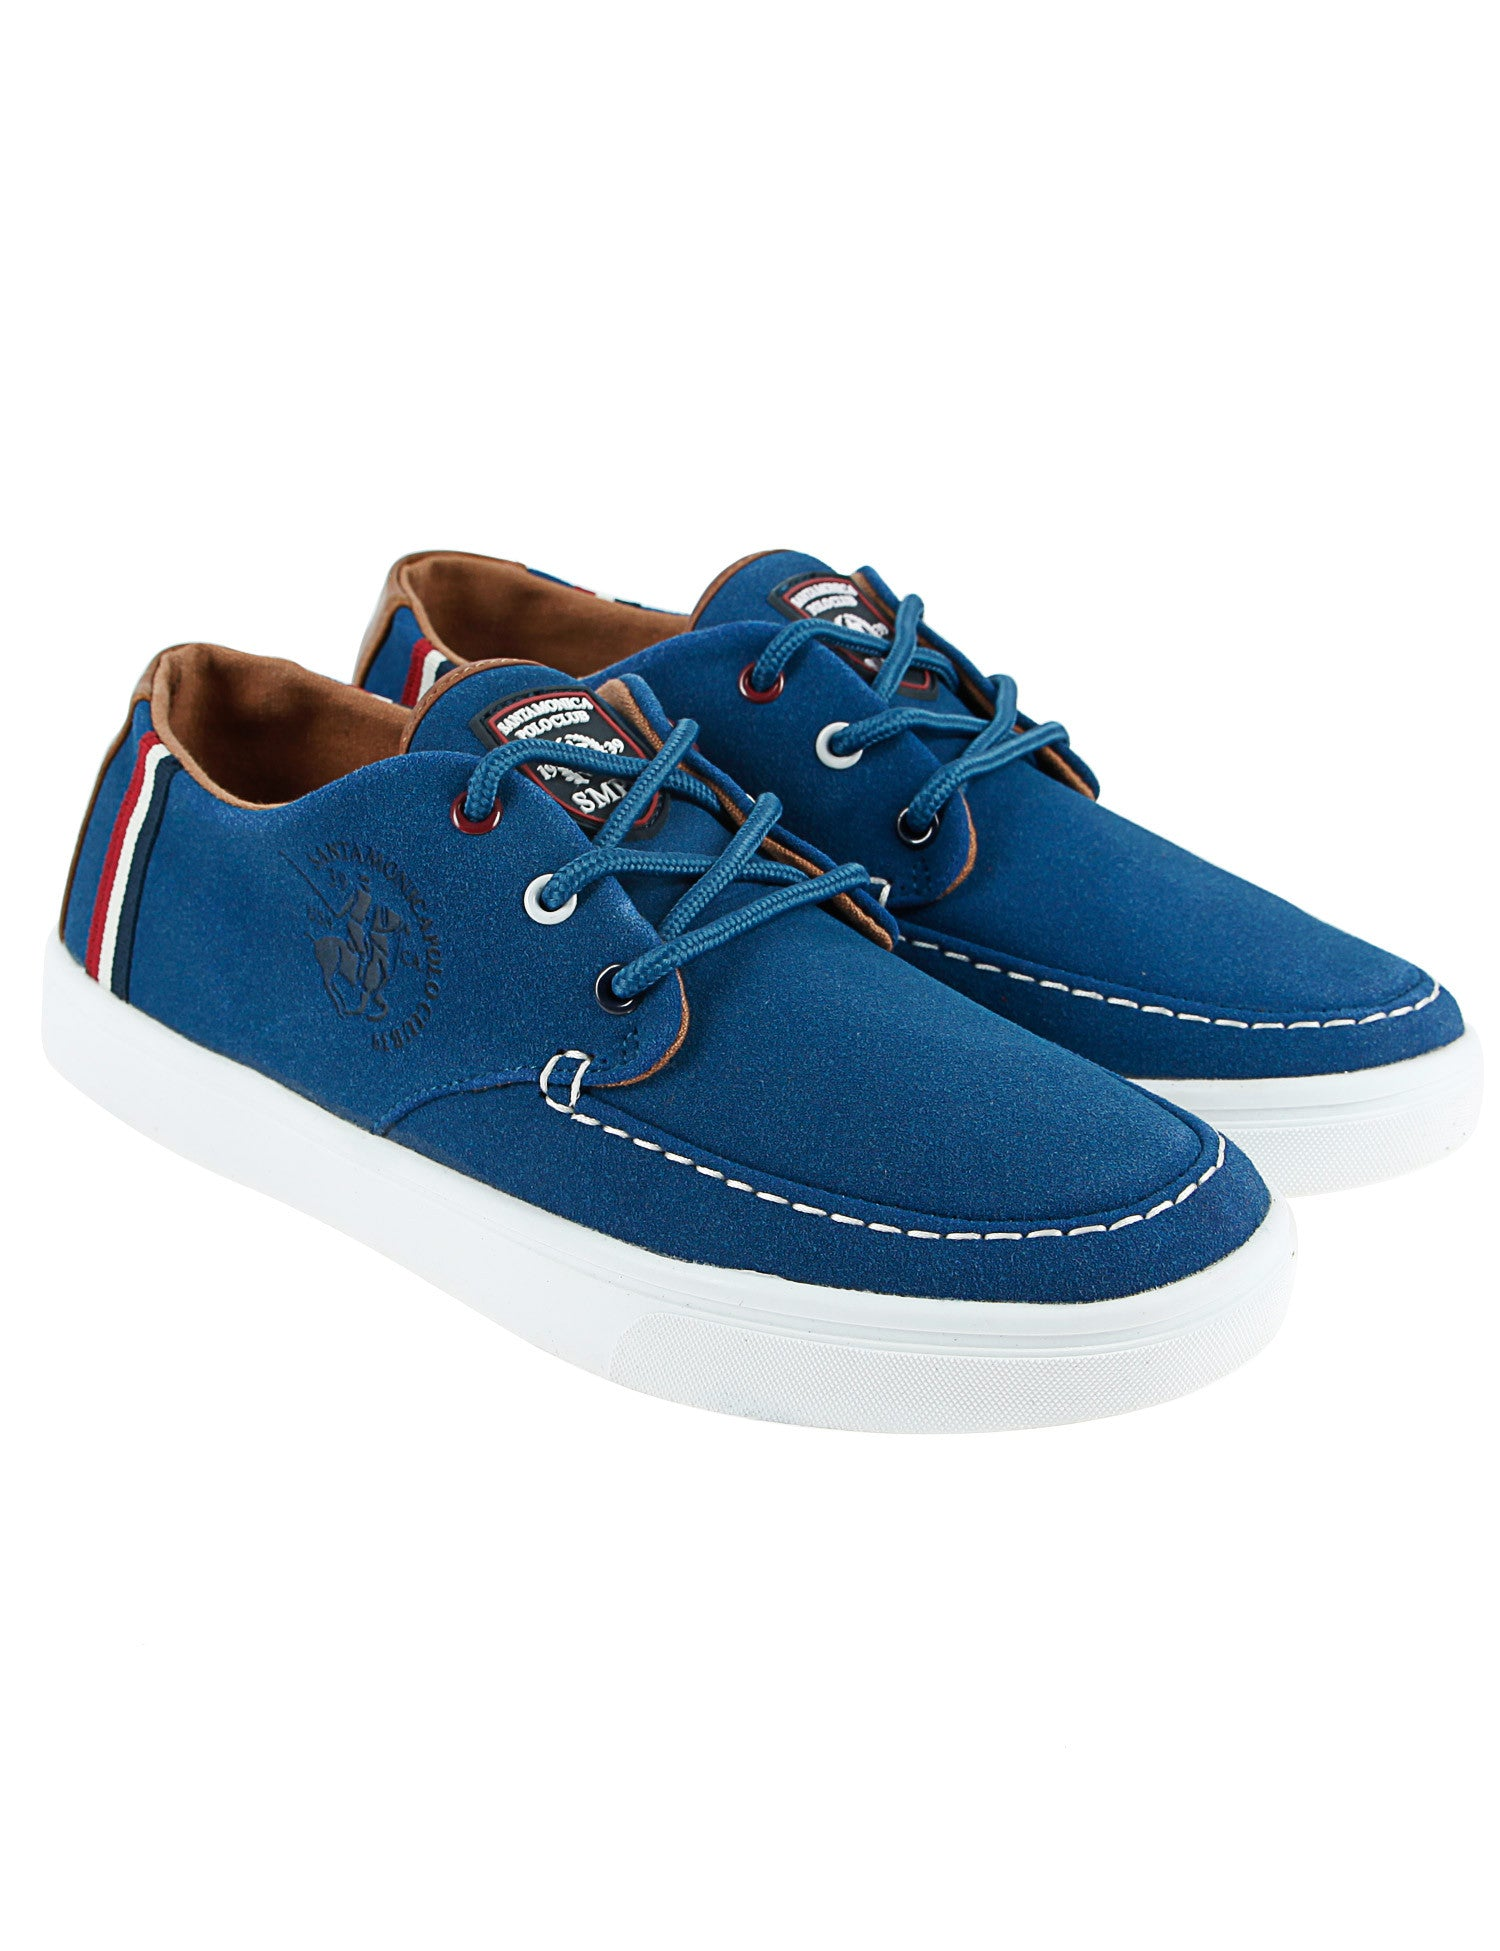 Santa Monica Sailing Shoes  Blue